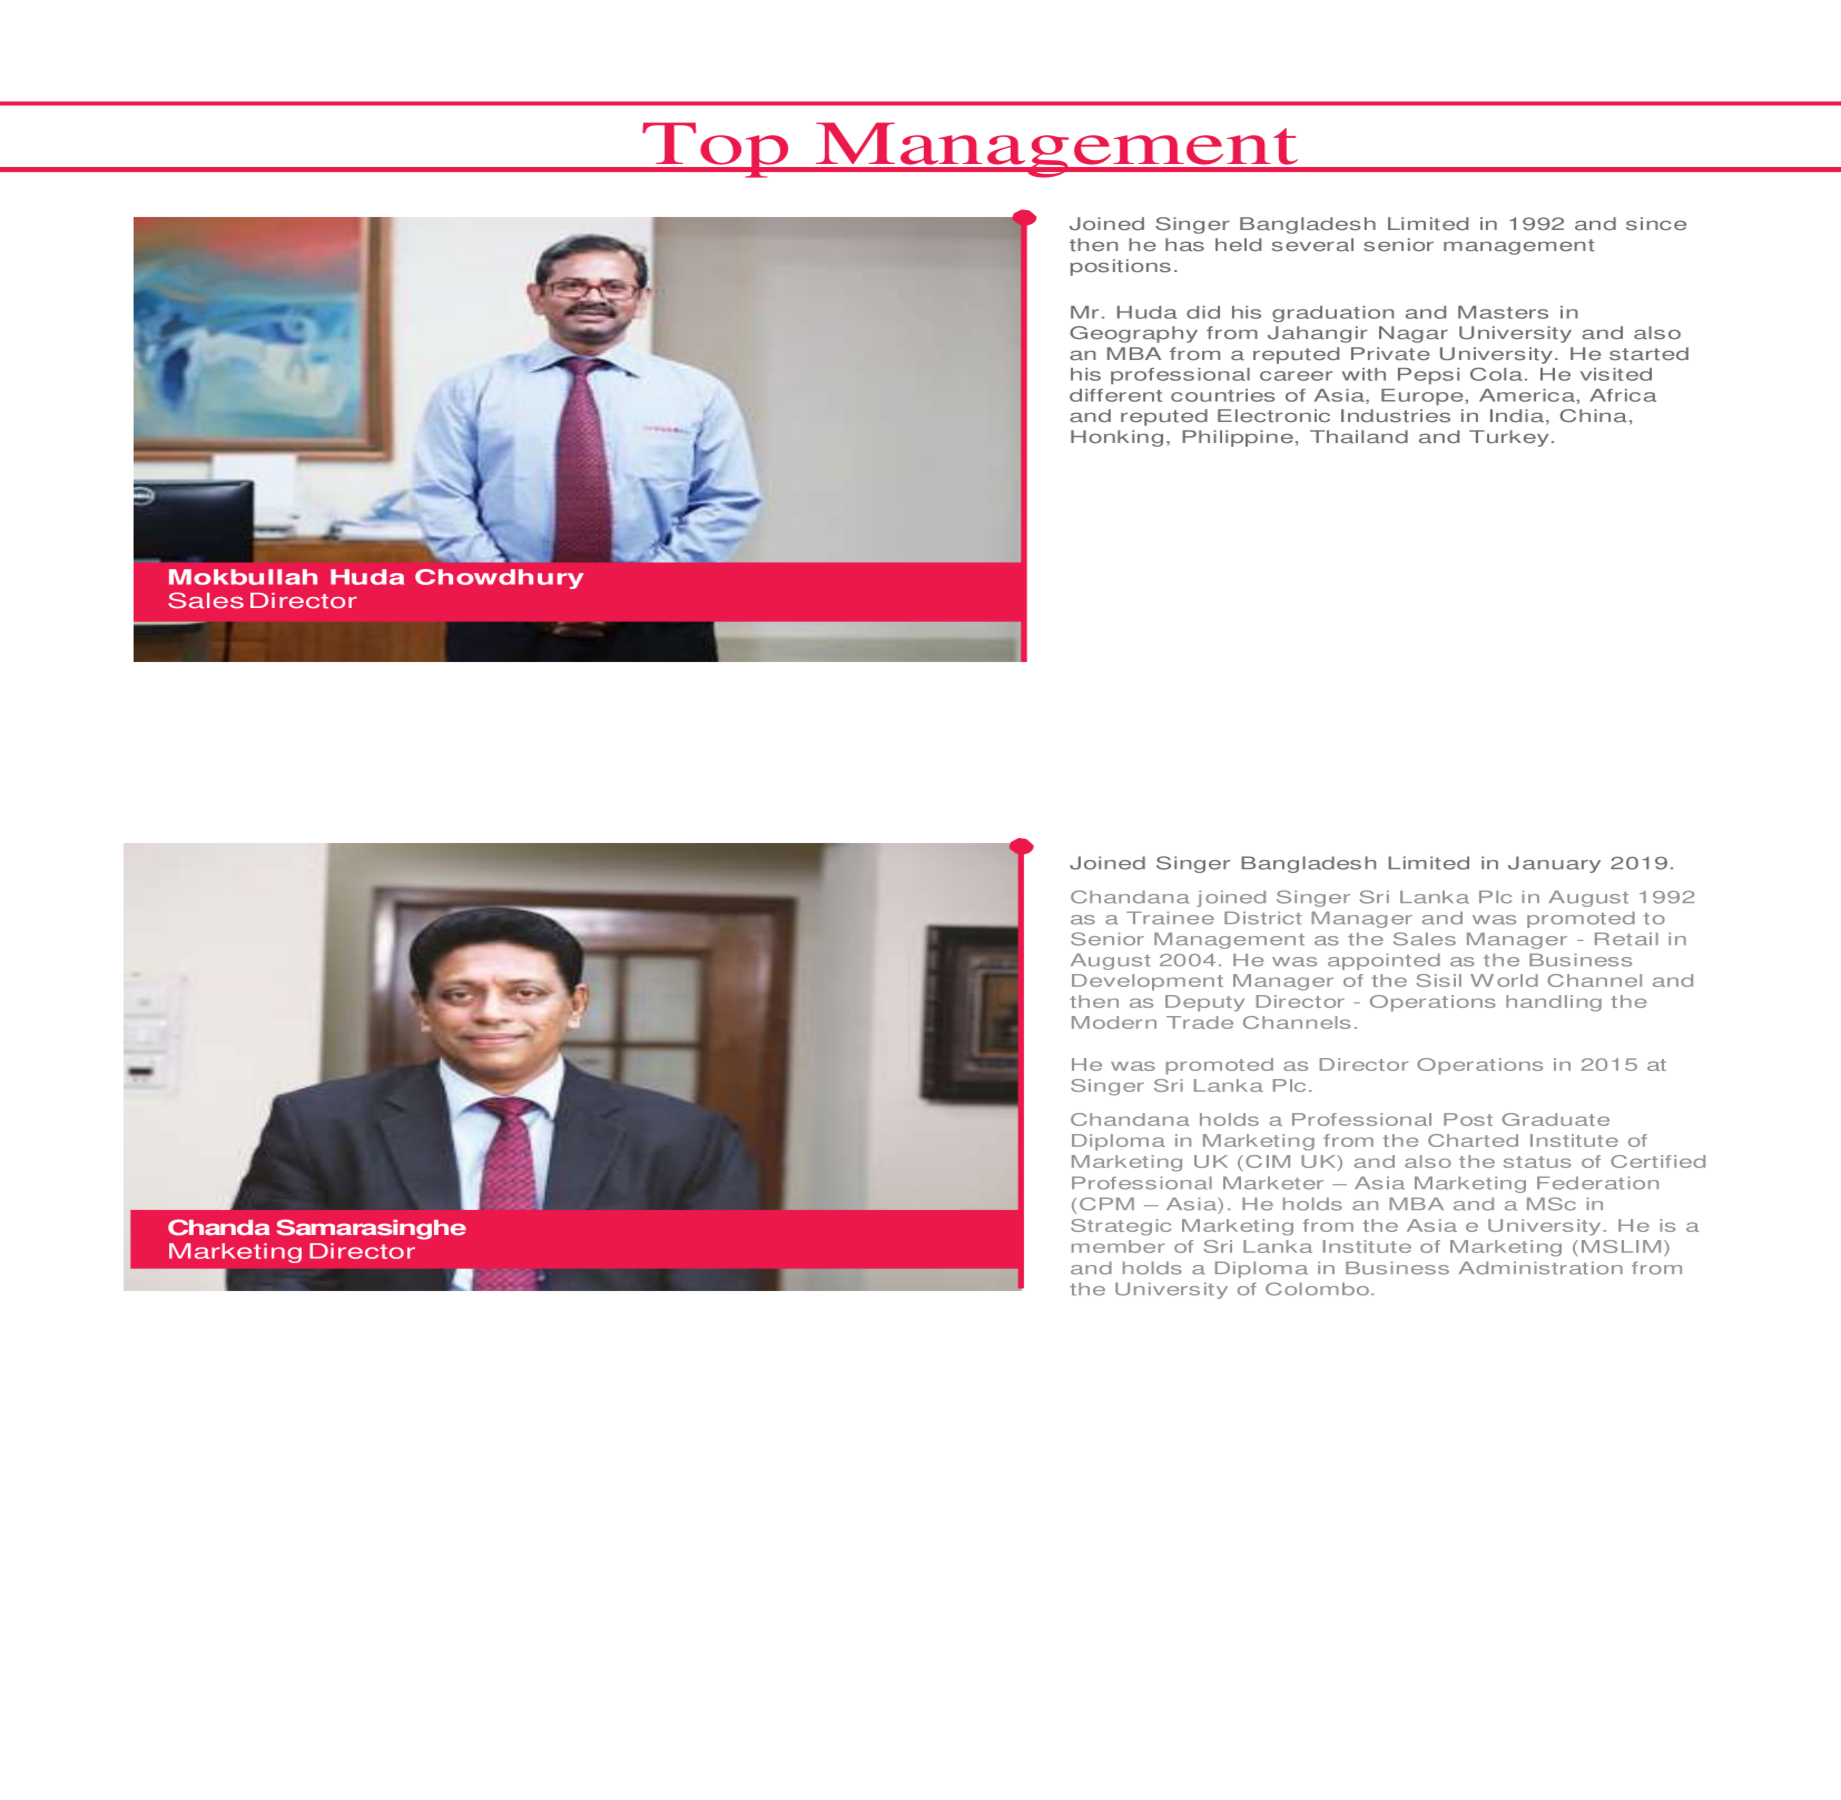 Top Managenment | SingerBD